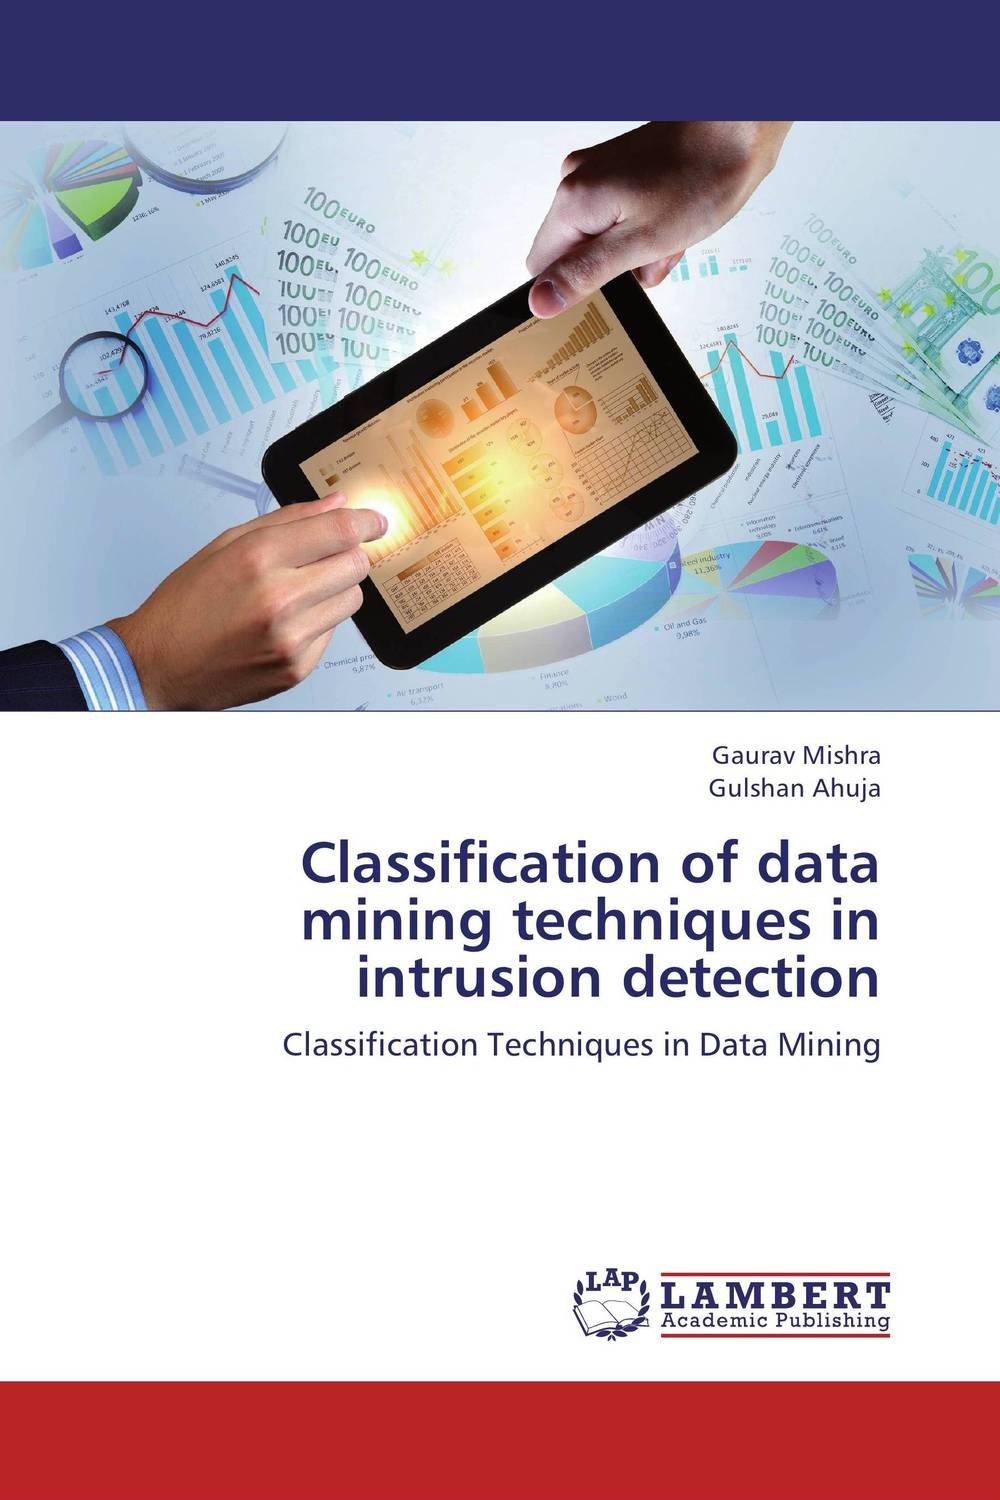 Classification of data mining techniques in intrusion detection survey on data mining techniques in intrusion detection